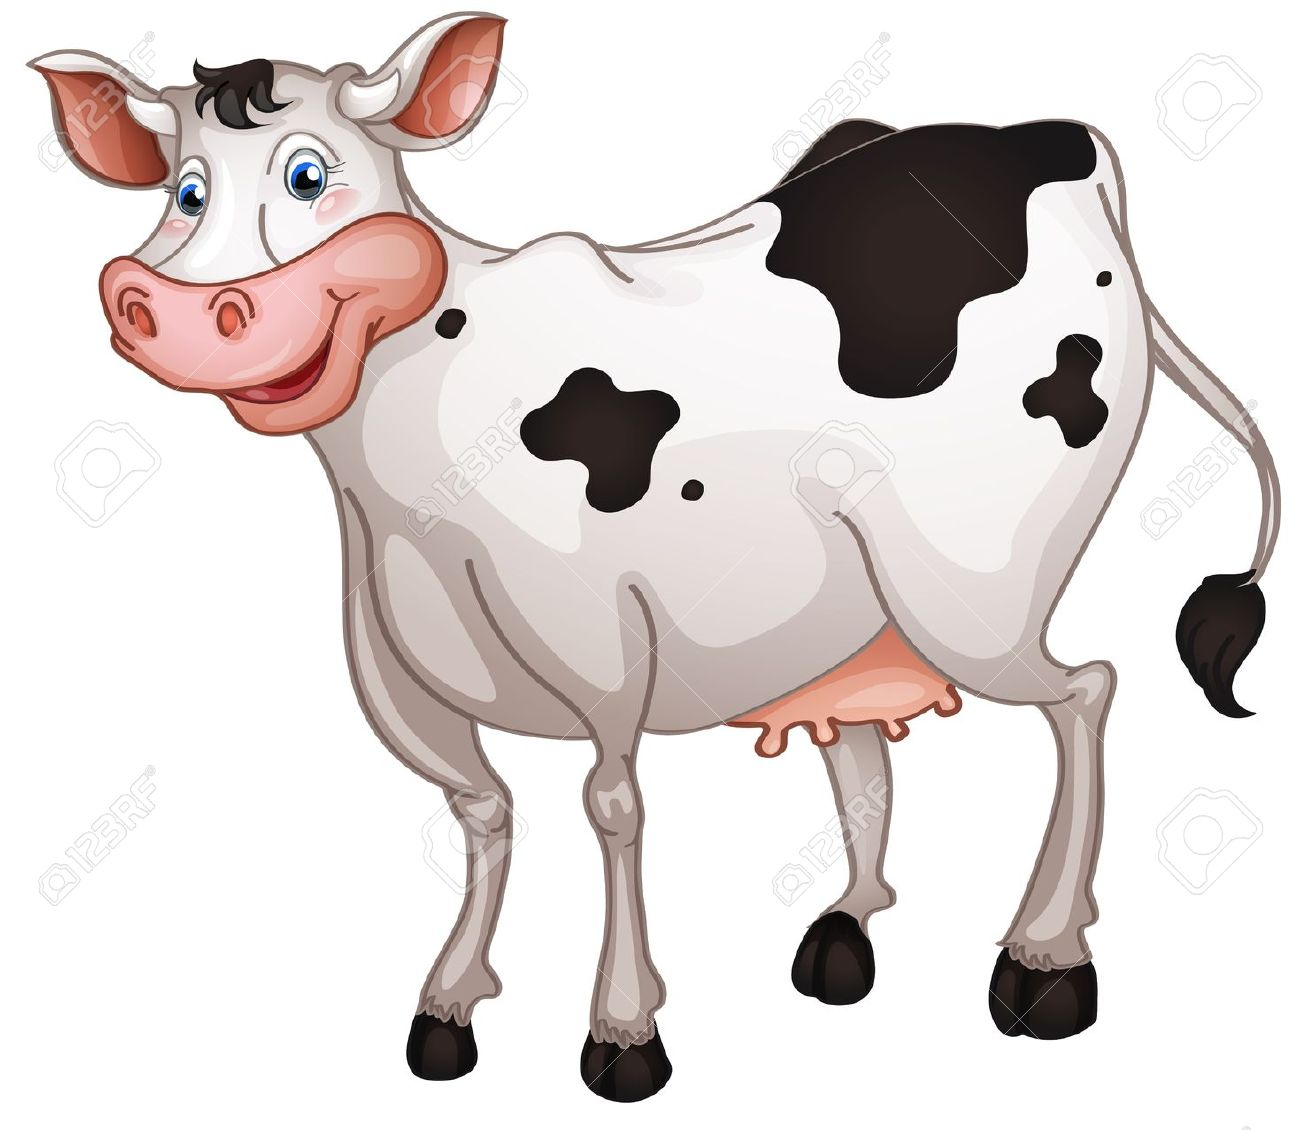 Cow Clip Art Free Cartoon | Clipart Panda - Free Clipart ...